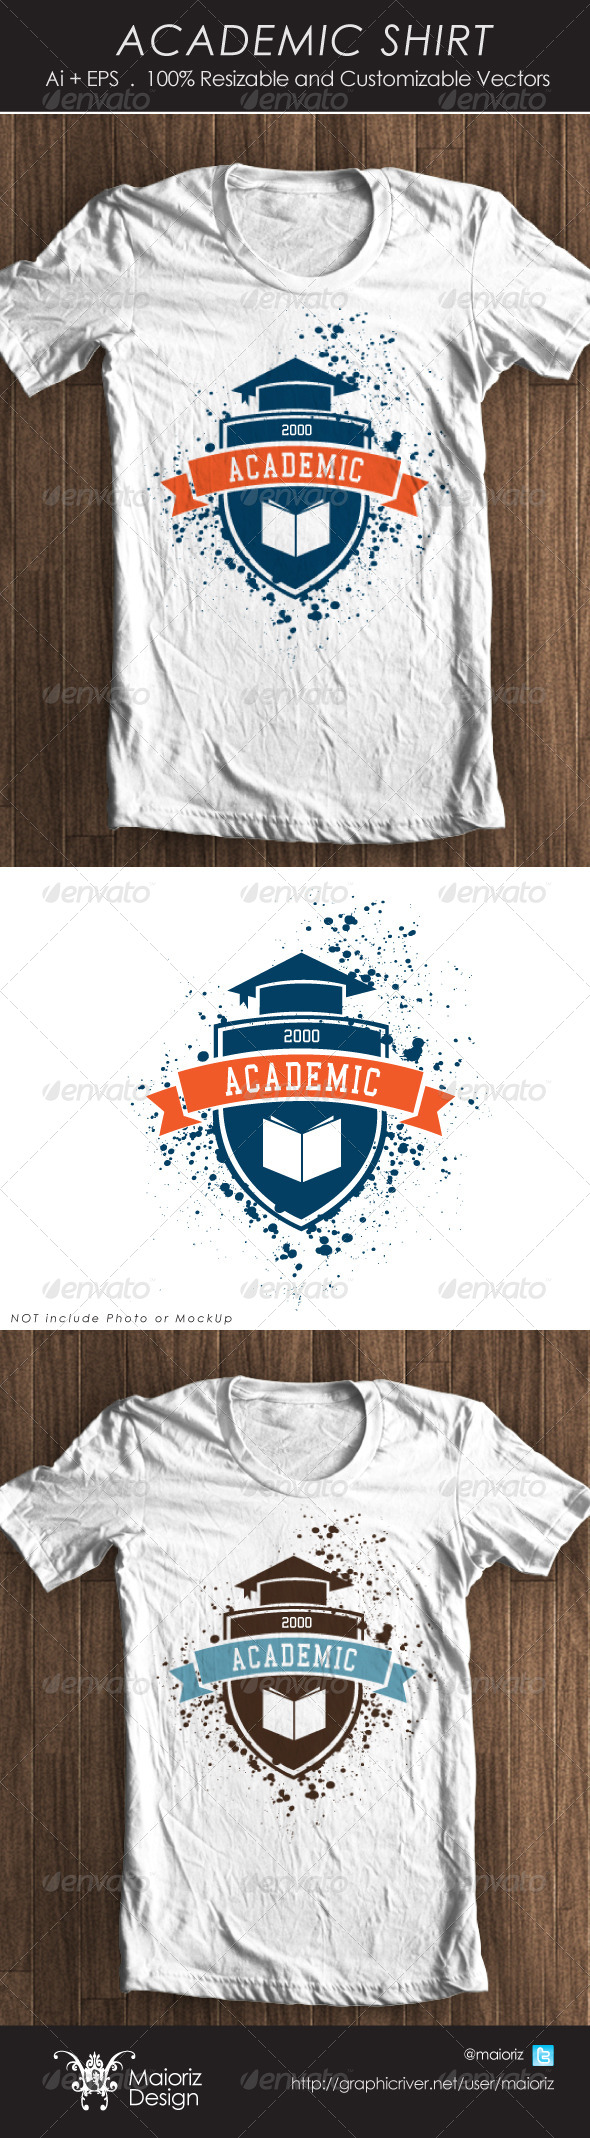 01_Academic-Preview